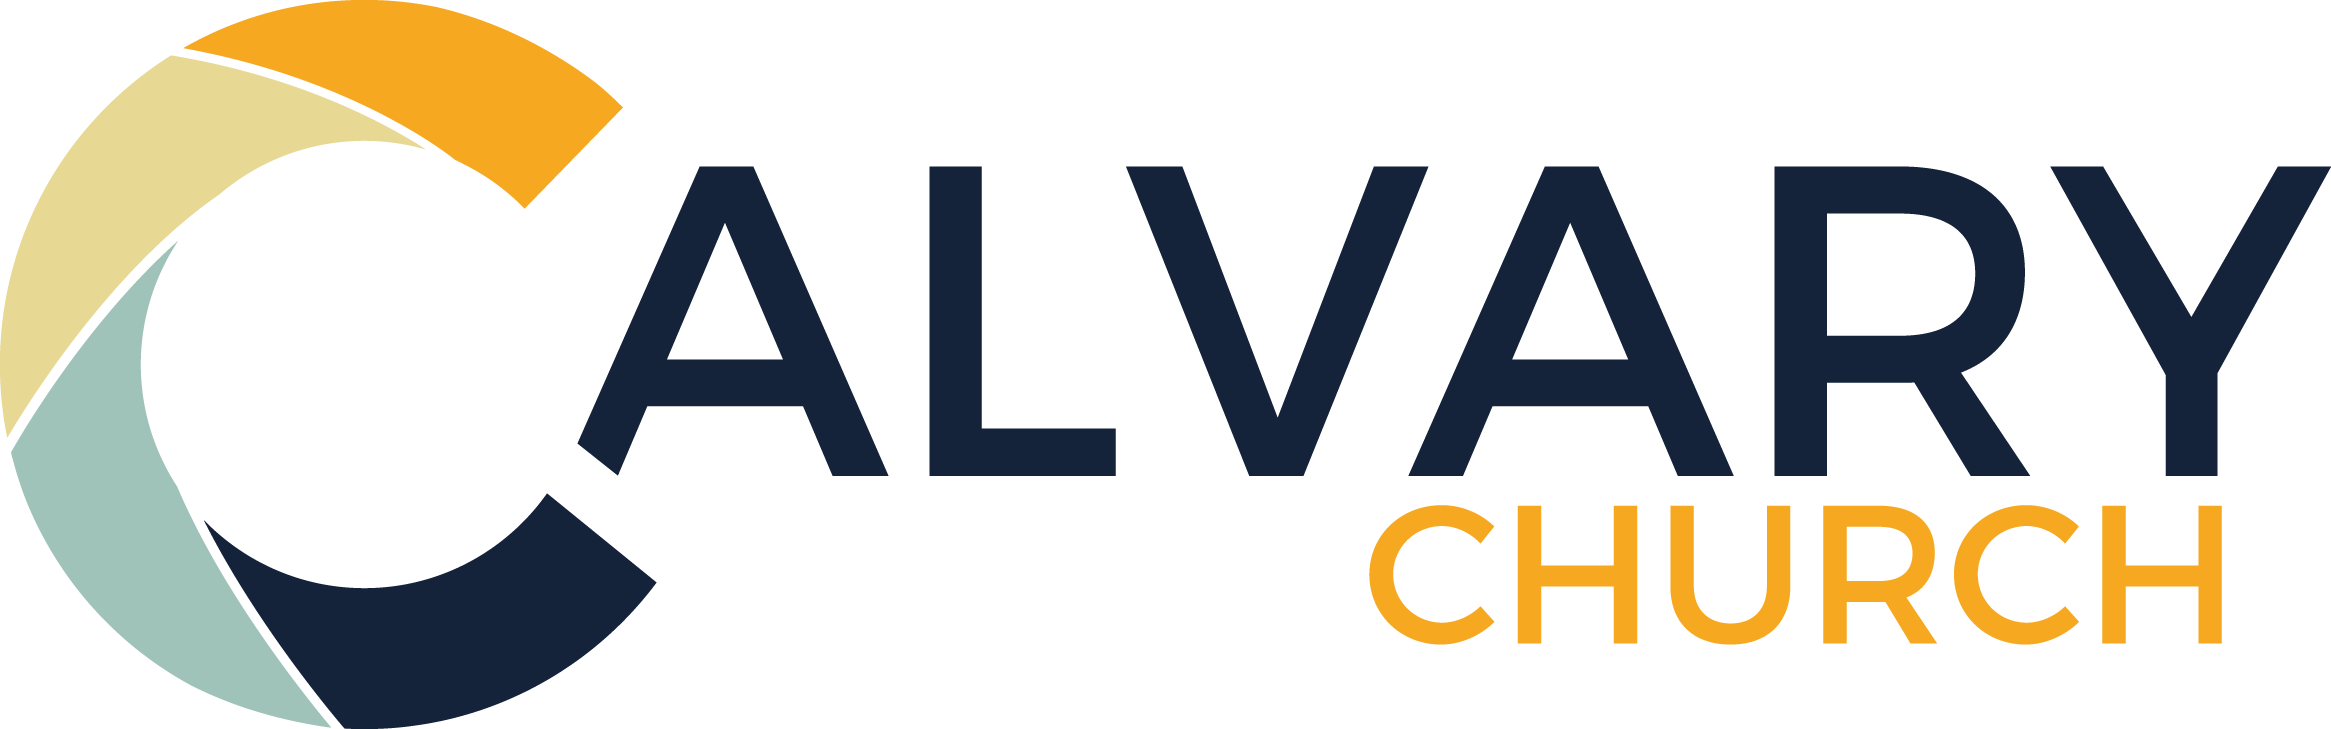 Annual Report - Every year, Calvary releases an Annual Report to highlight the activities of the church during the past year.